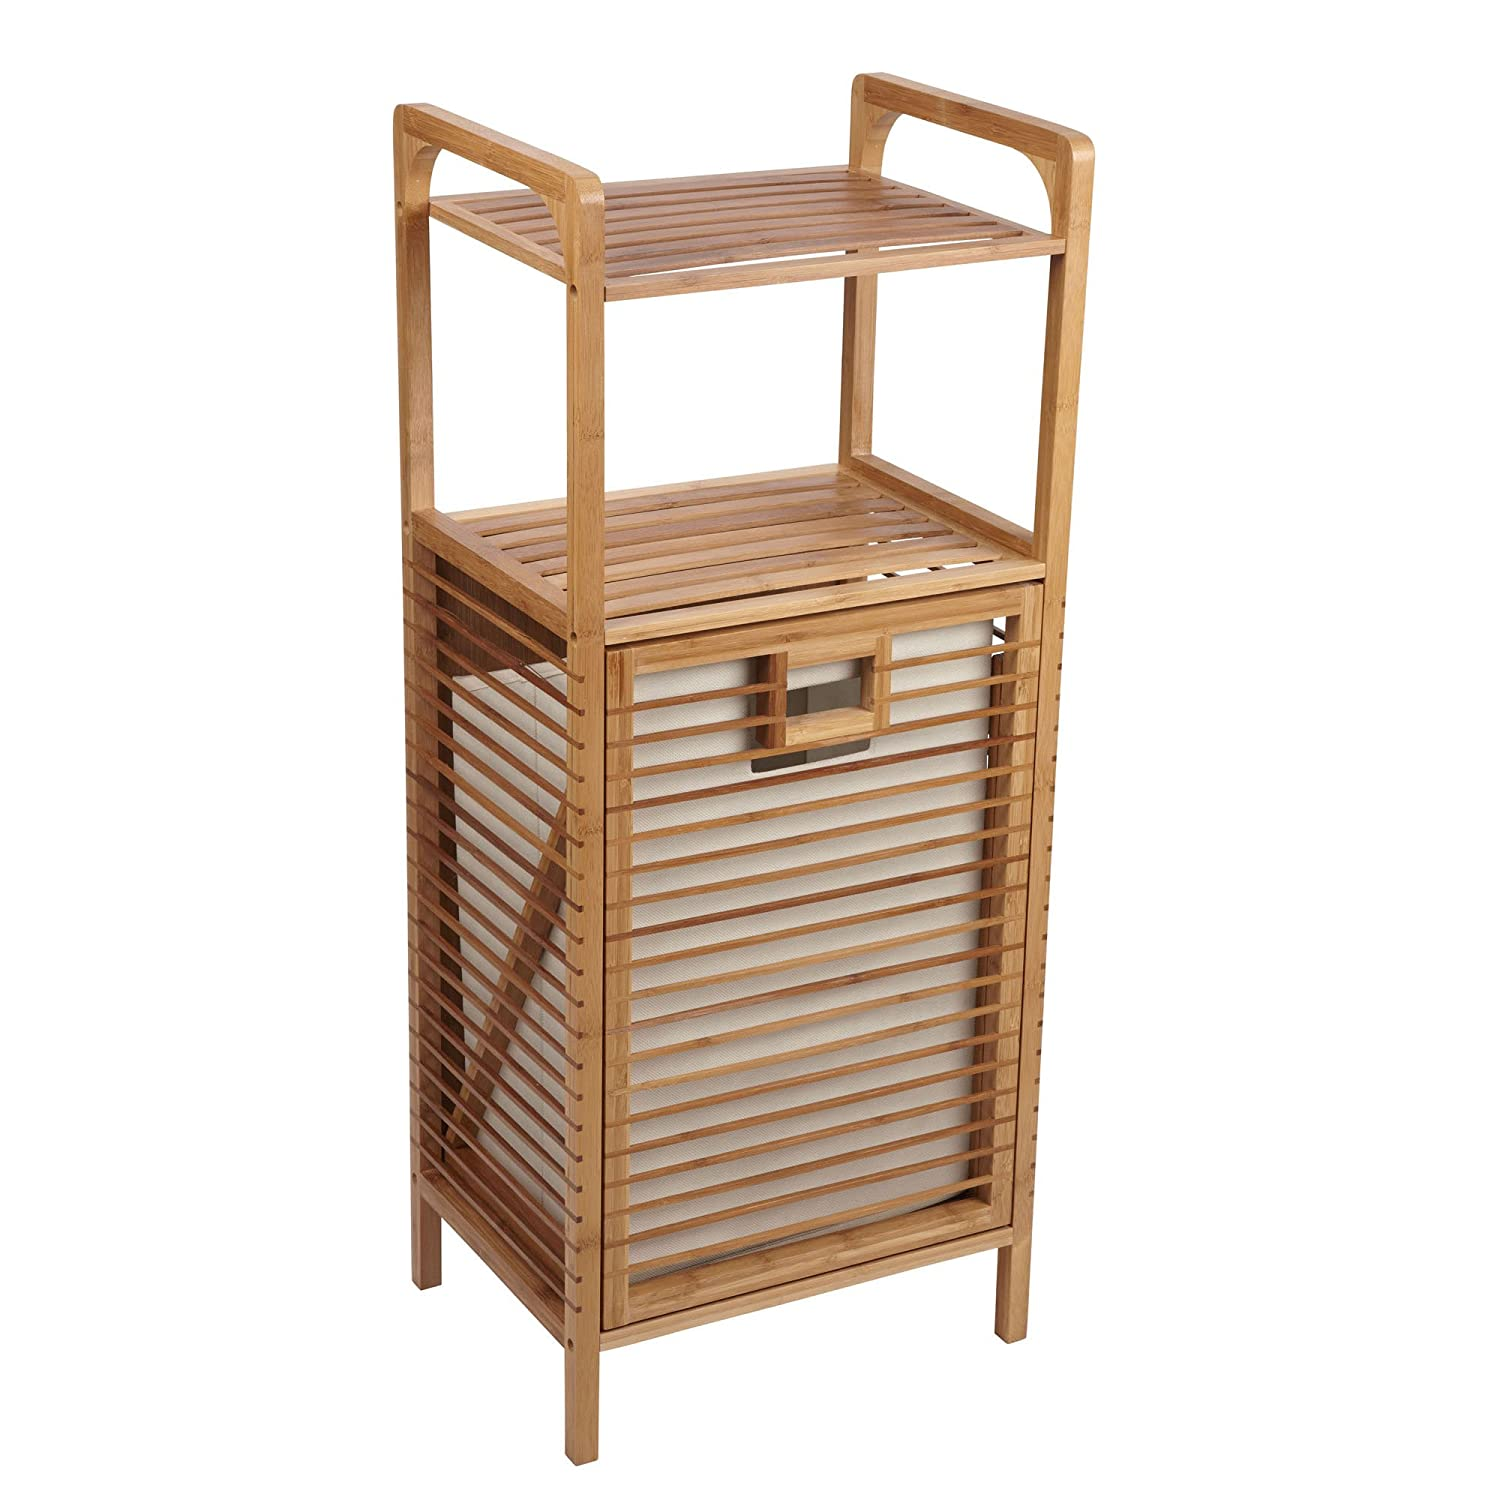 Attractive Amazon.com: Household Essentials Tilt Out Bamboo Laundry Hamper: Home U0026  Kitchen